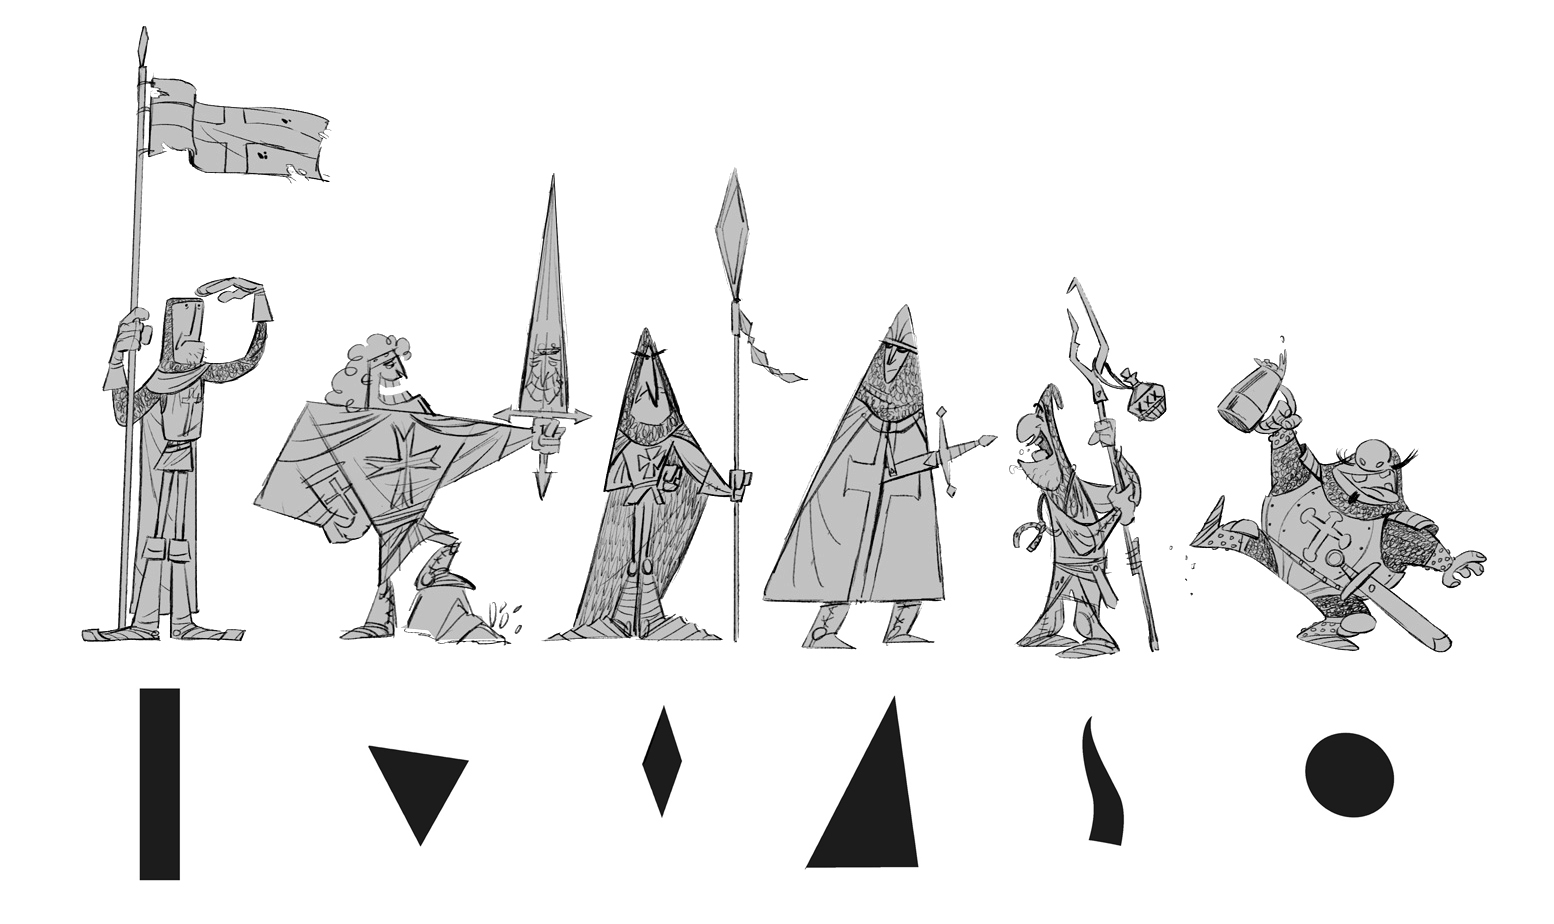 tarkstuff: CGMA Character Design Classes with Nate Wragg